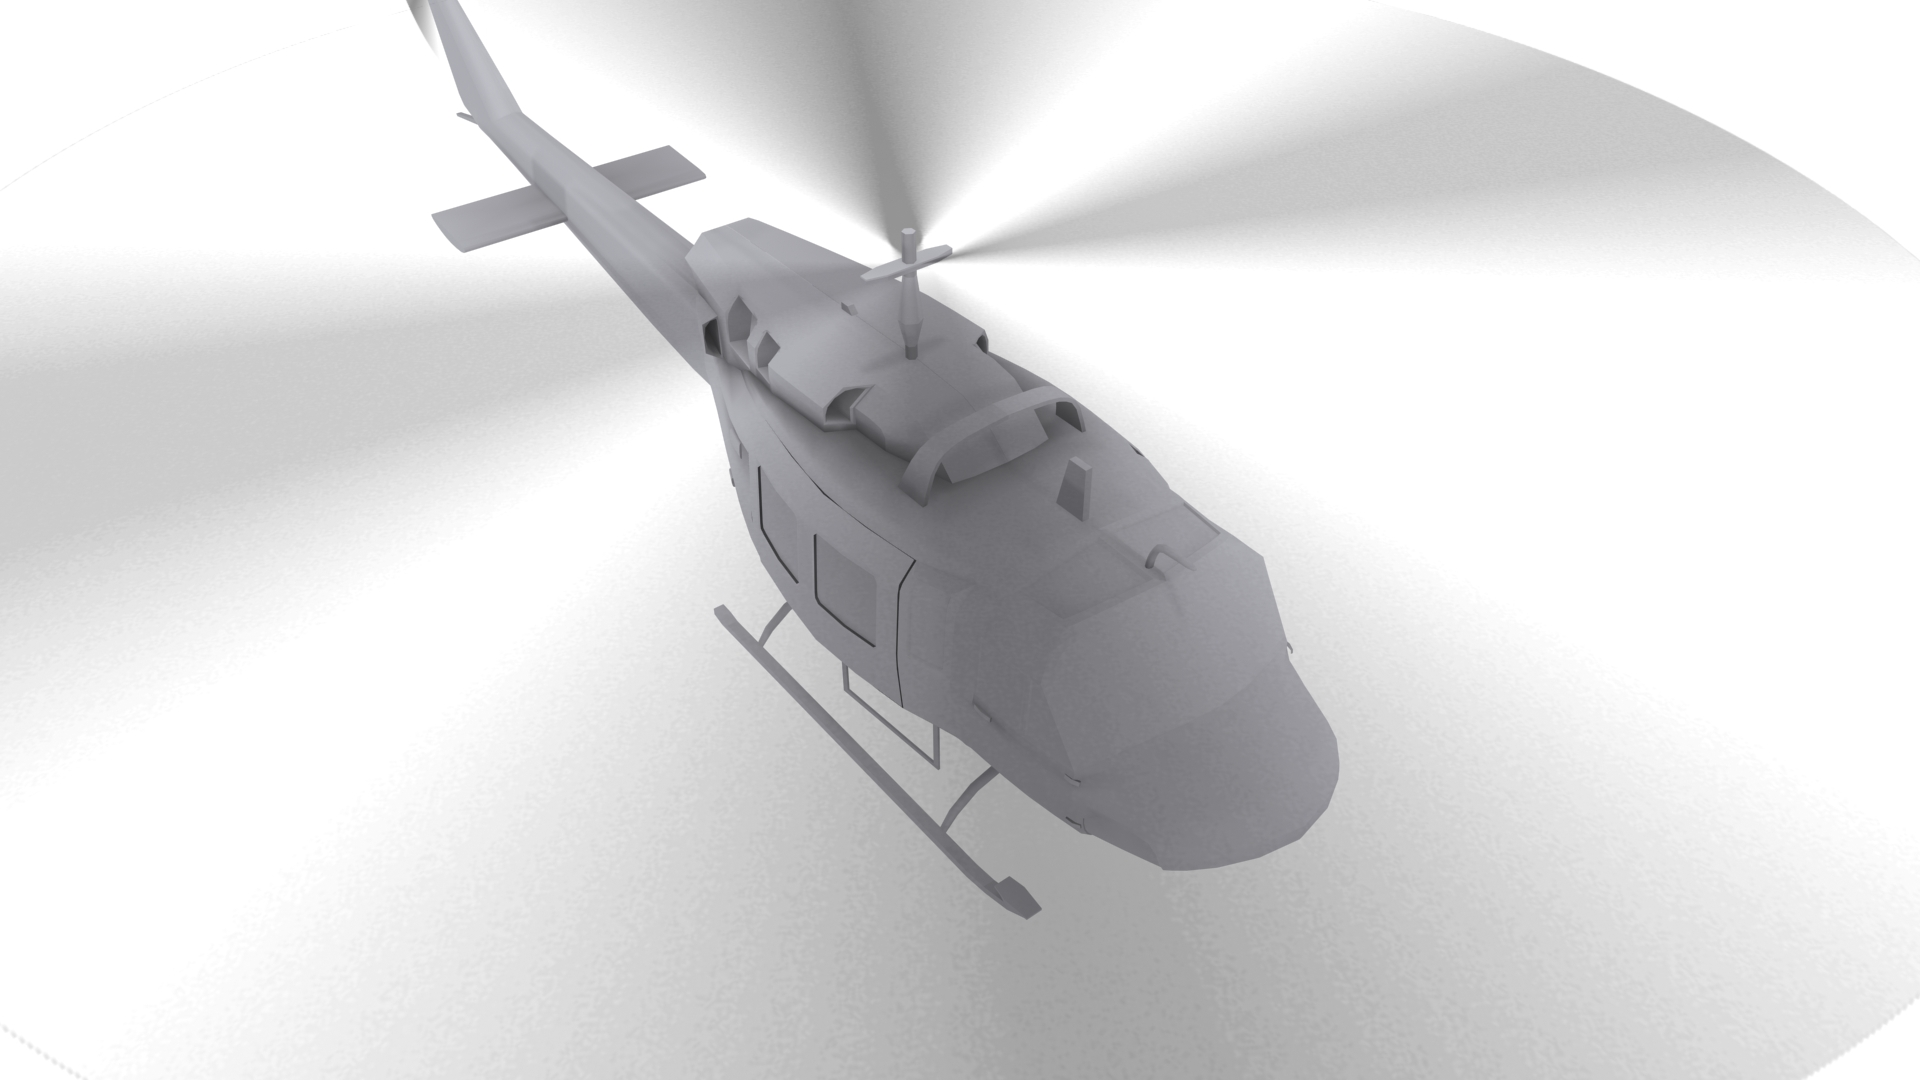 helicopter-7